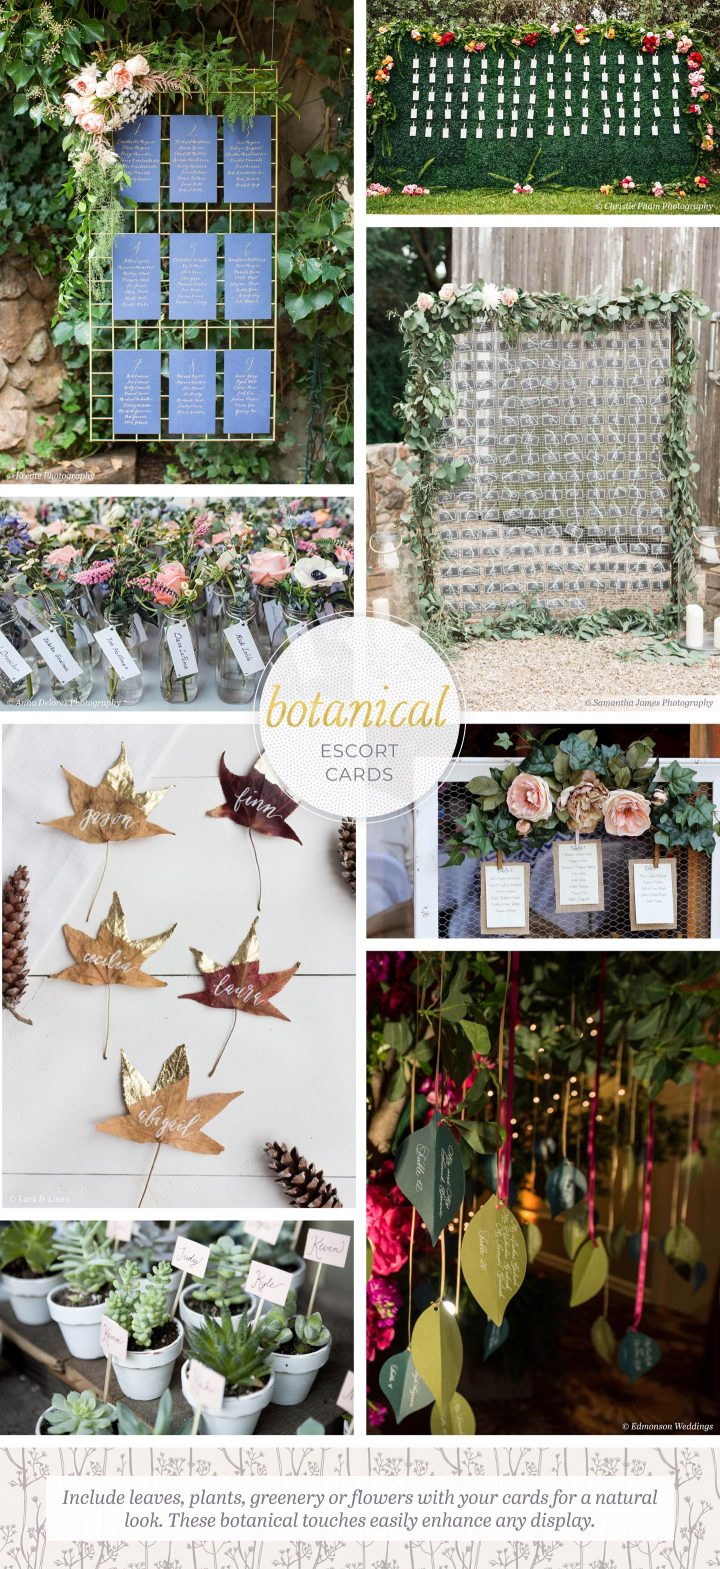 Botanical Escort Cards: 8 photos of escort cards using leaves, flowers, and succulents. Include leaves, plats, greenery, or flowers with your cards for a natural look. These botanical touches easily enhance any display.